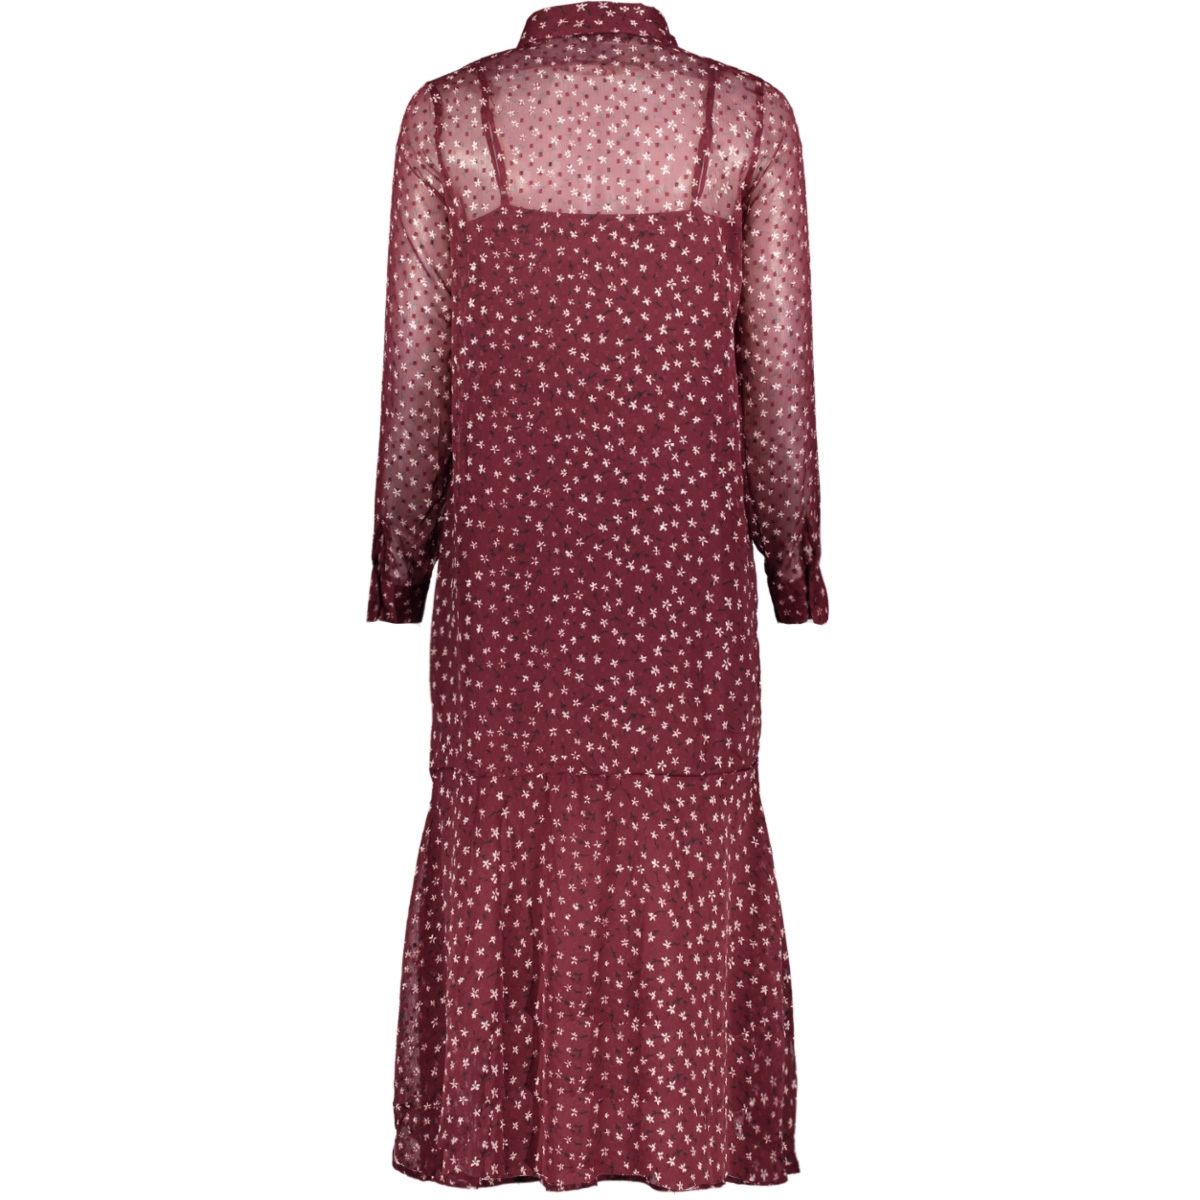 onlkim ls dress wvn 15184670 only jurk tawny port/blooming